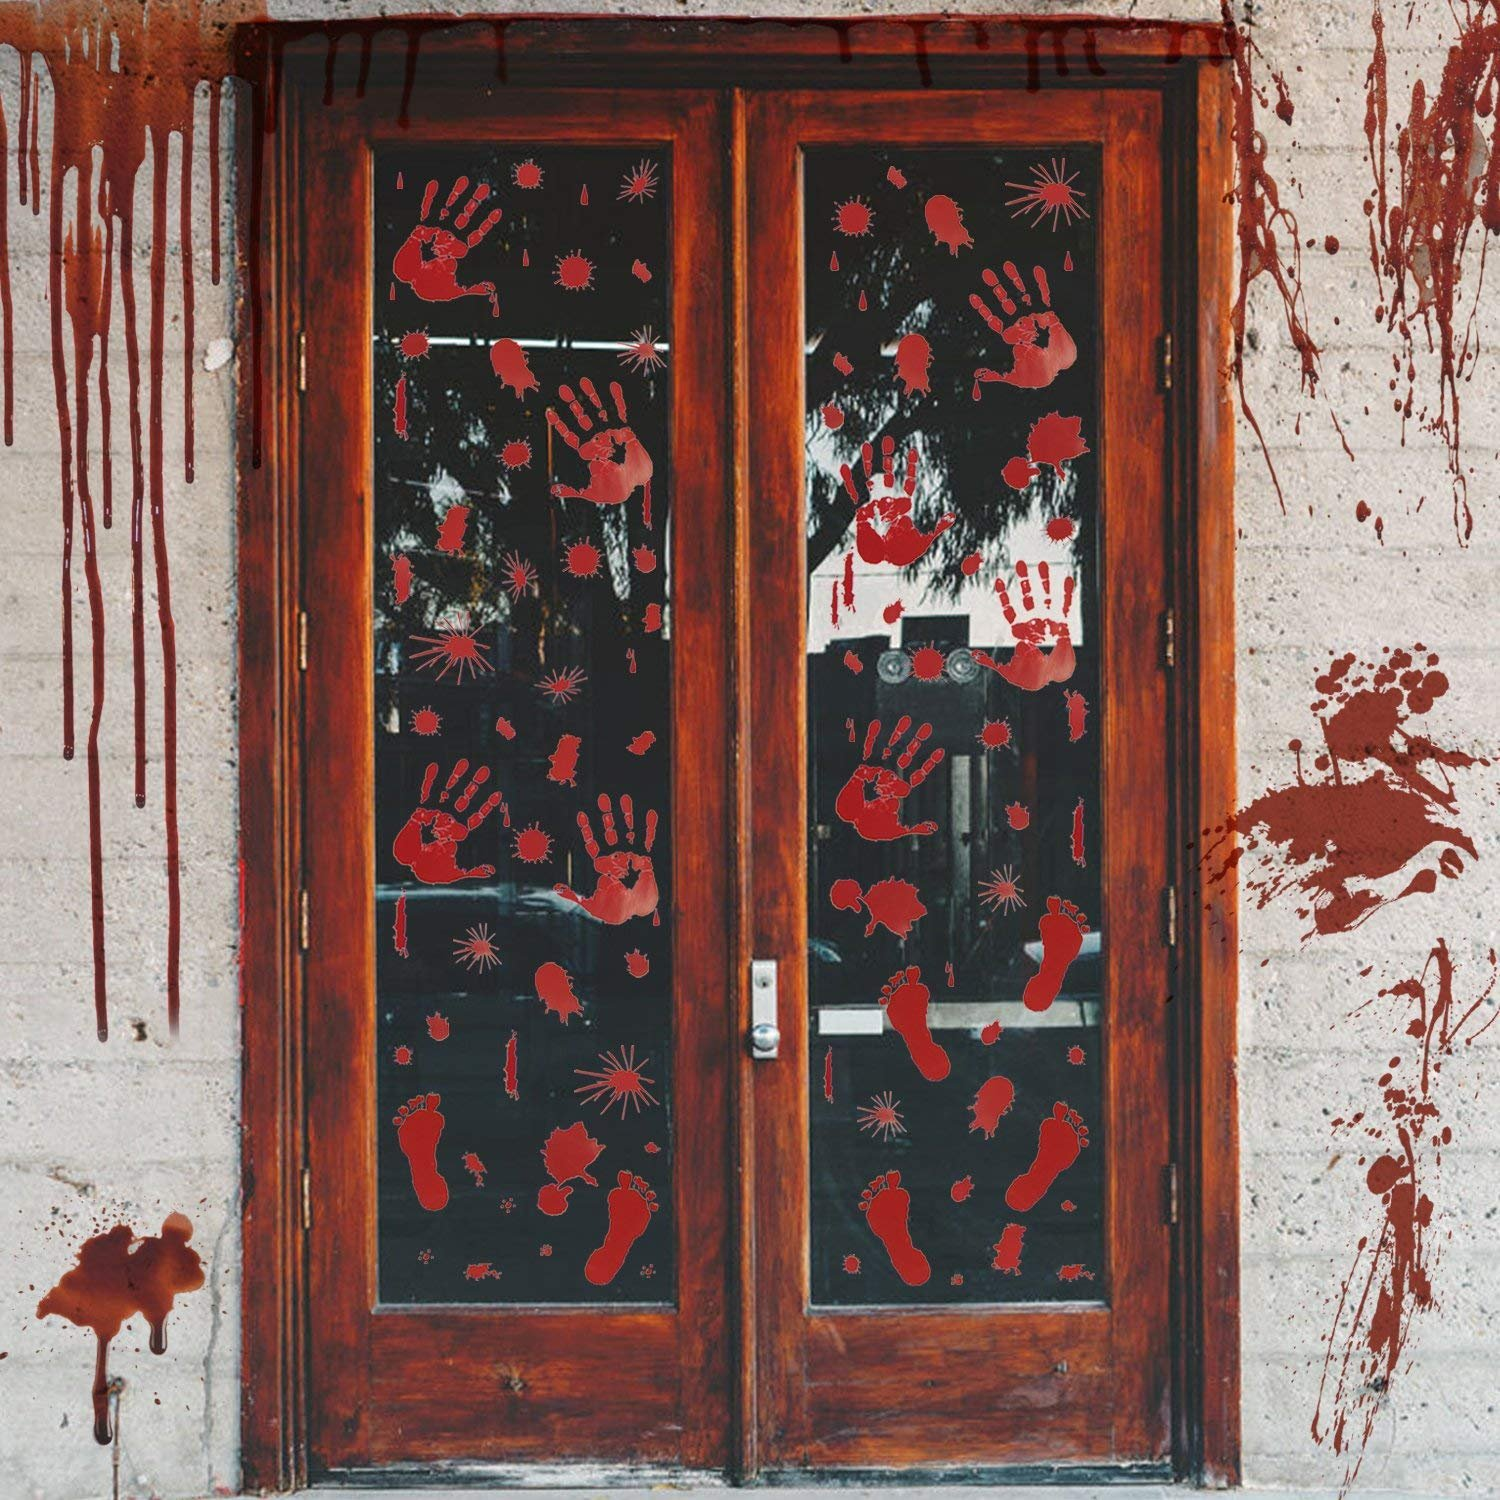 6 Sheets Halloween Bloody Handprint Footprint Window Clings Decals, Horror Bathroom Decor Zombie Walking Dead Party Decorations